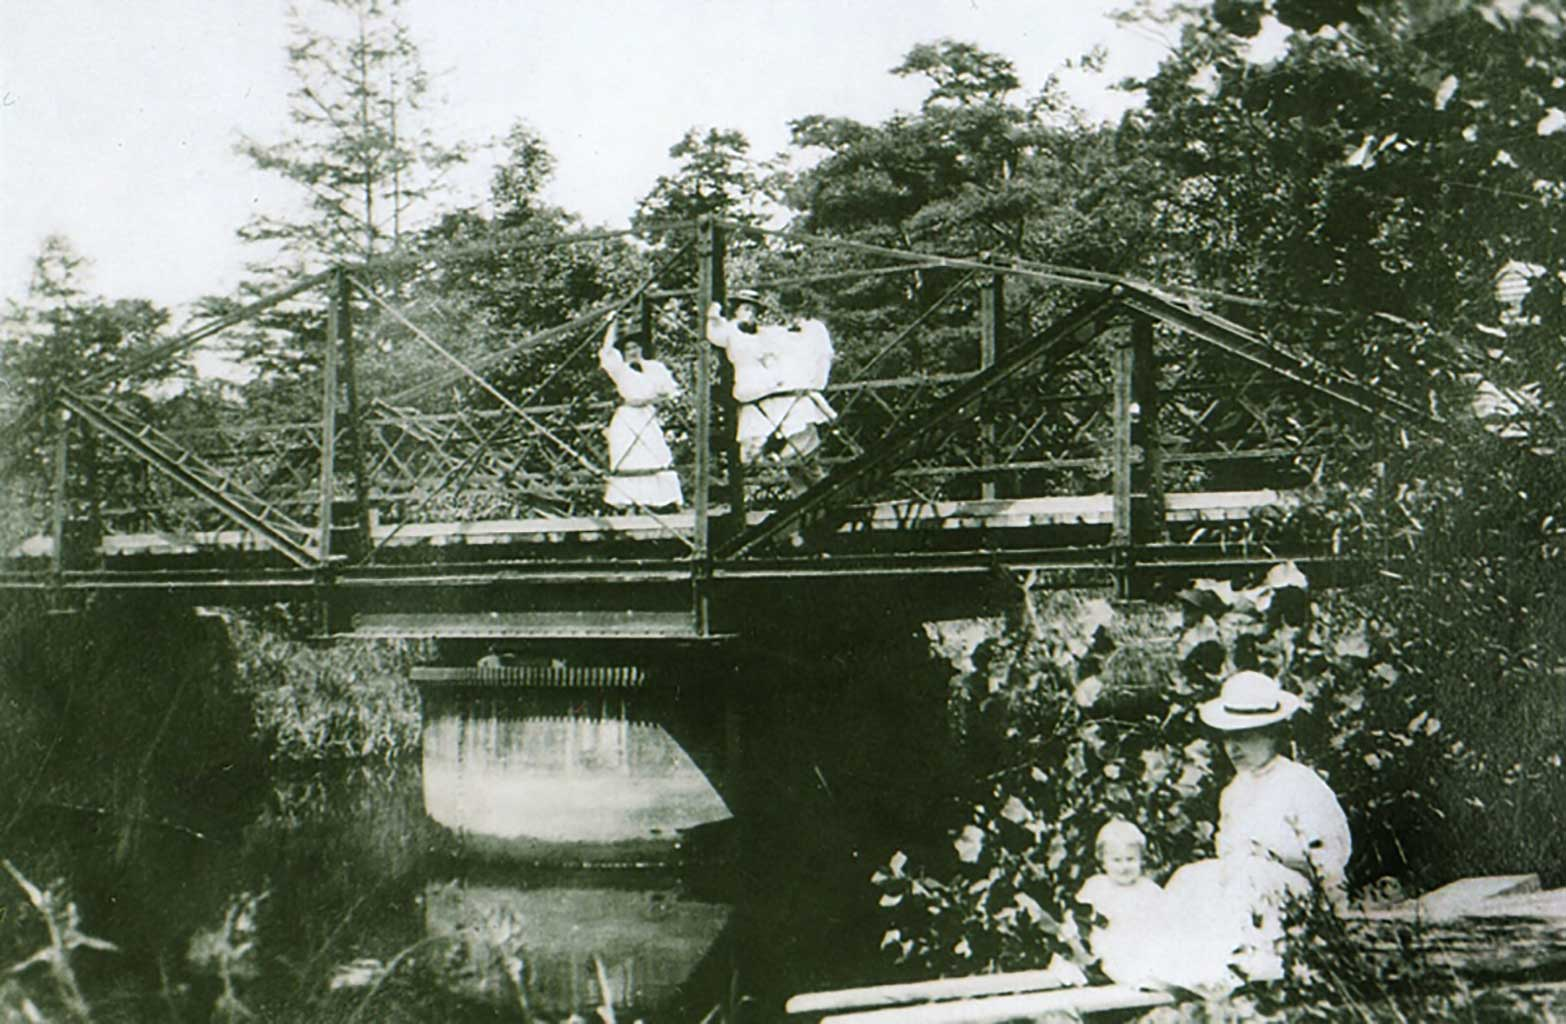 bridge-at-everets-w-g-saunders-jr-held-by-mother-alice-c-1907-saunders-family-collection